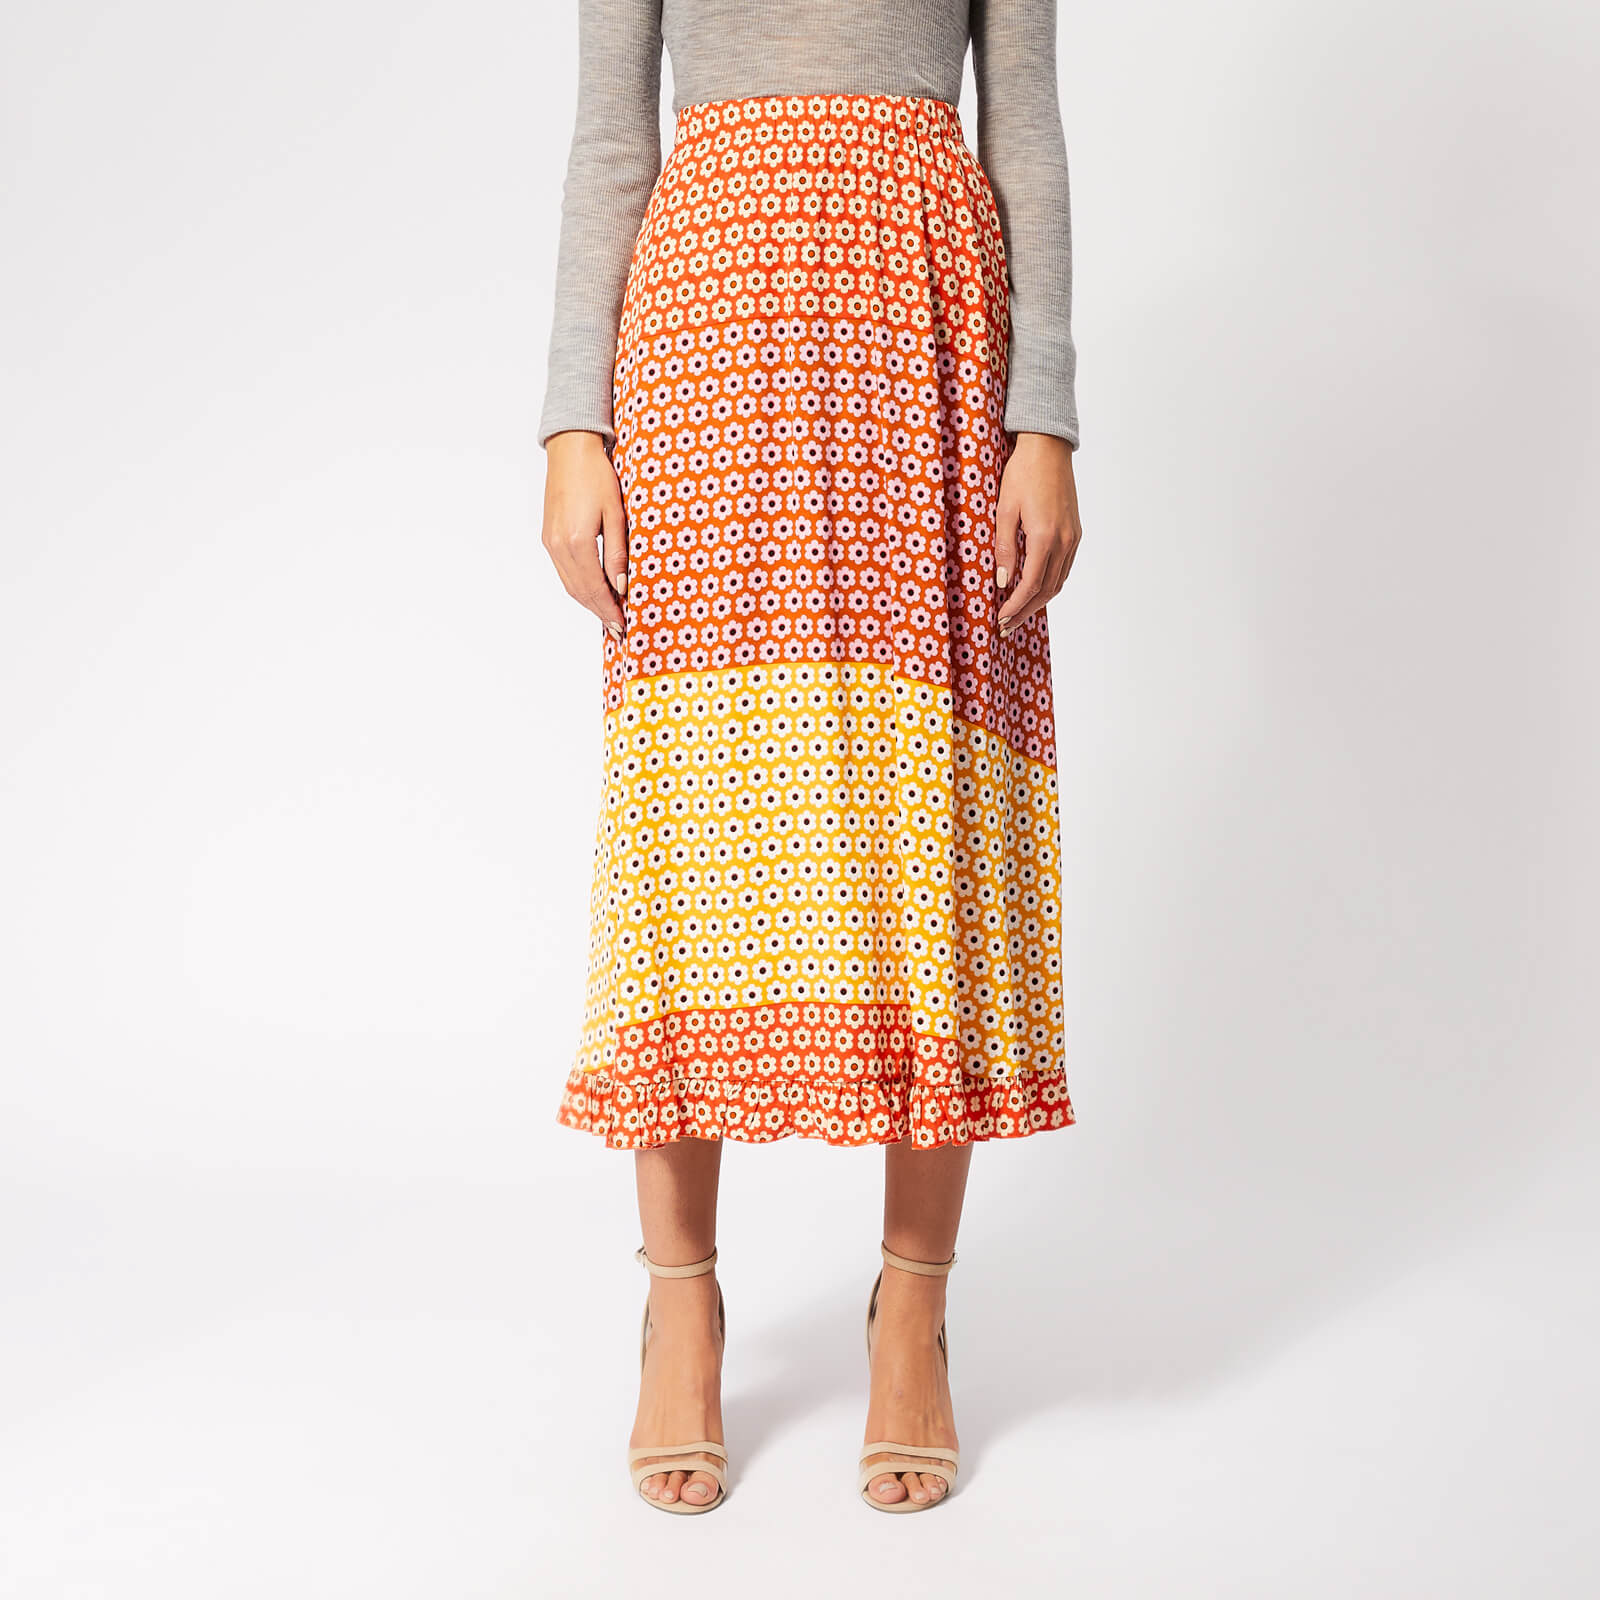 Stine Goya Women s Trudy Skirt - Daisy - Free UK Delivery over £50 2822aa599